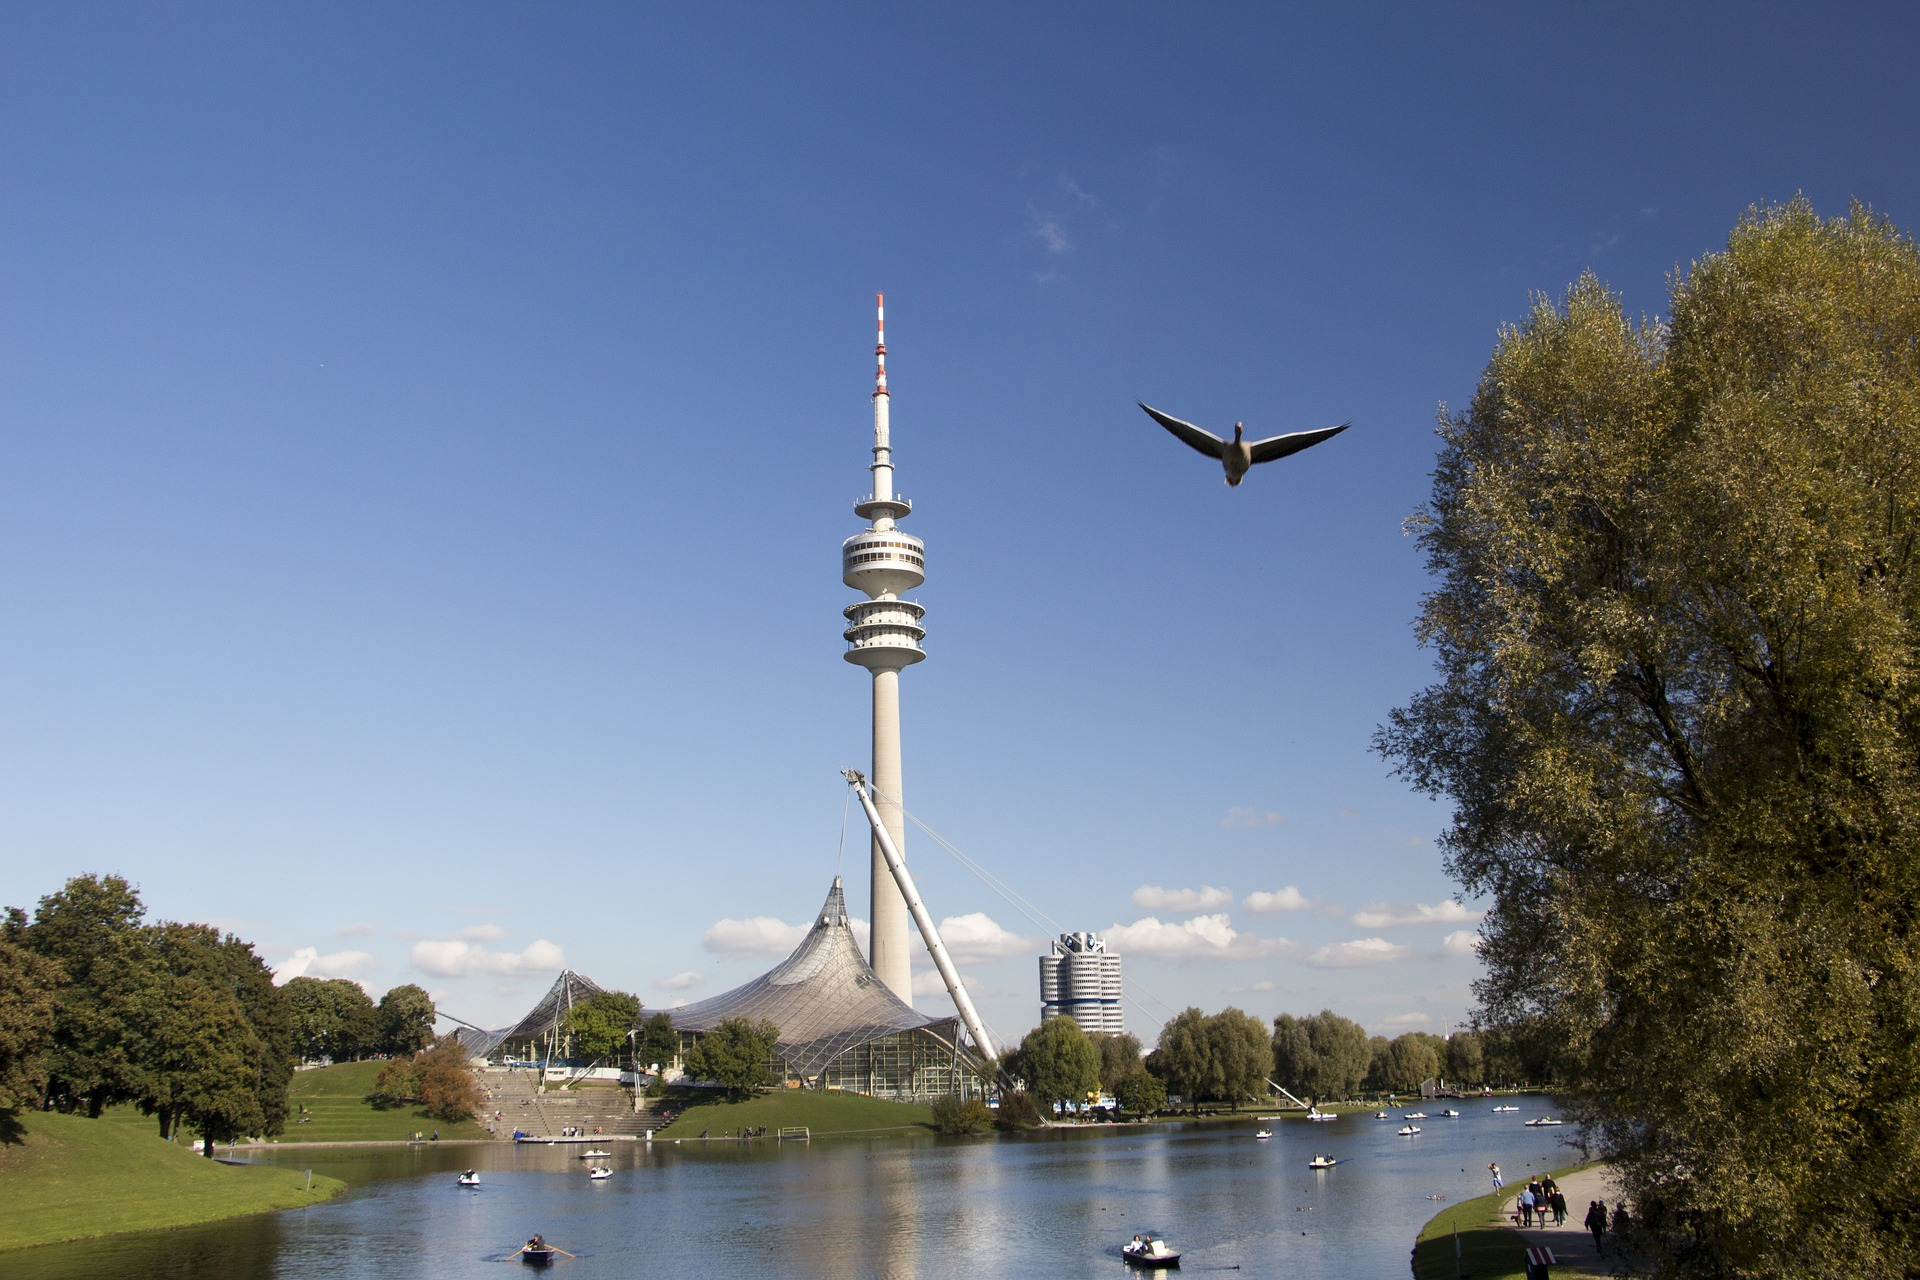 The Olympic Tower (German Olympiaturm) in the Olympic Park, Munich, Germany